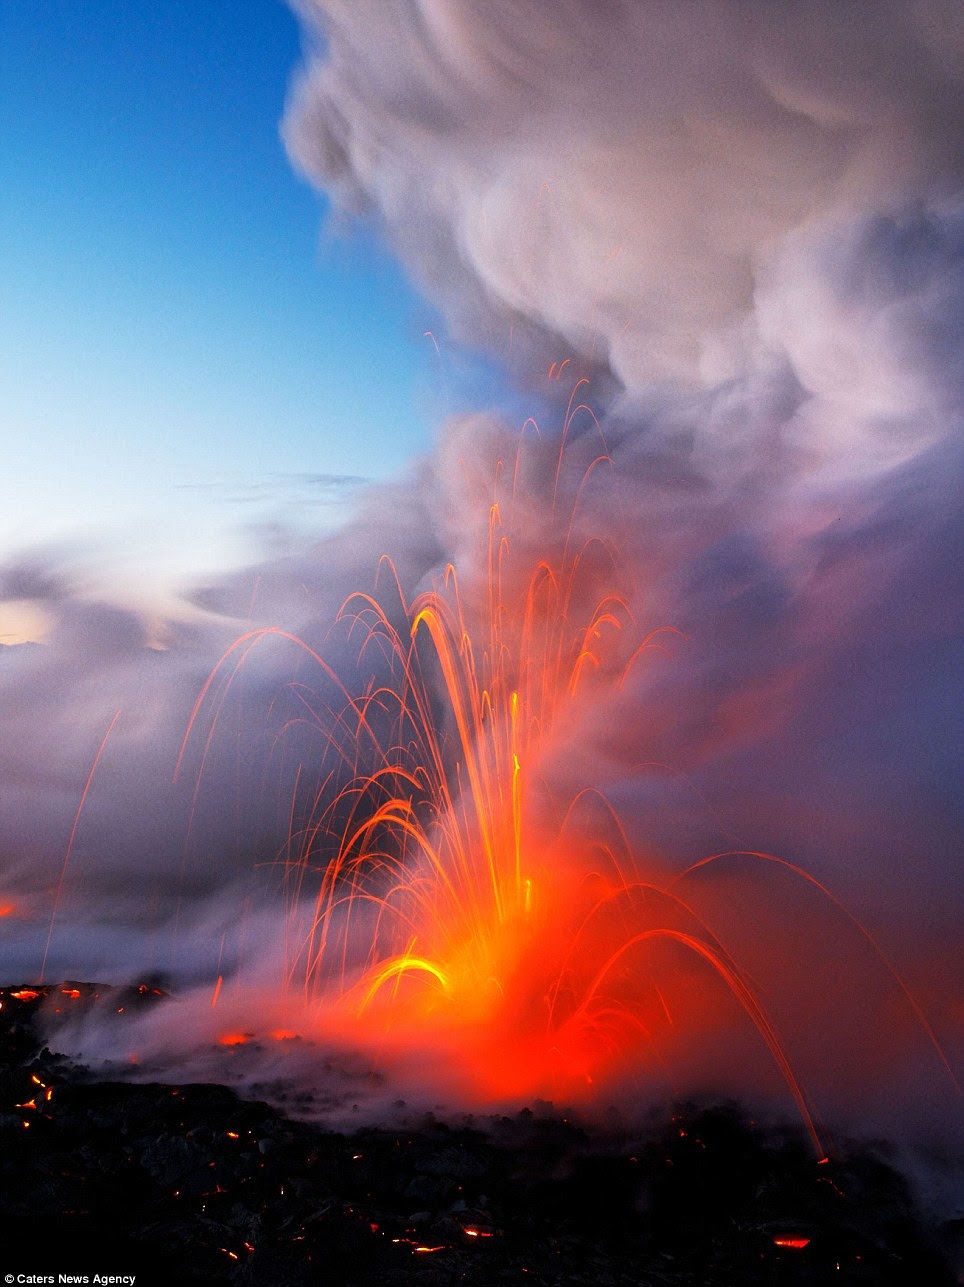 Spark of attraction: Flames shoot up through water as a volcano errupts